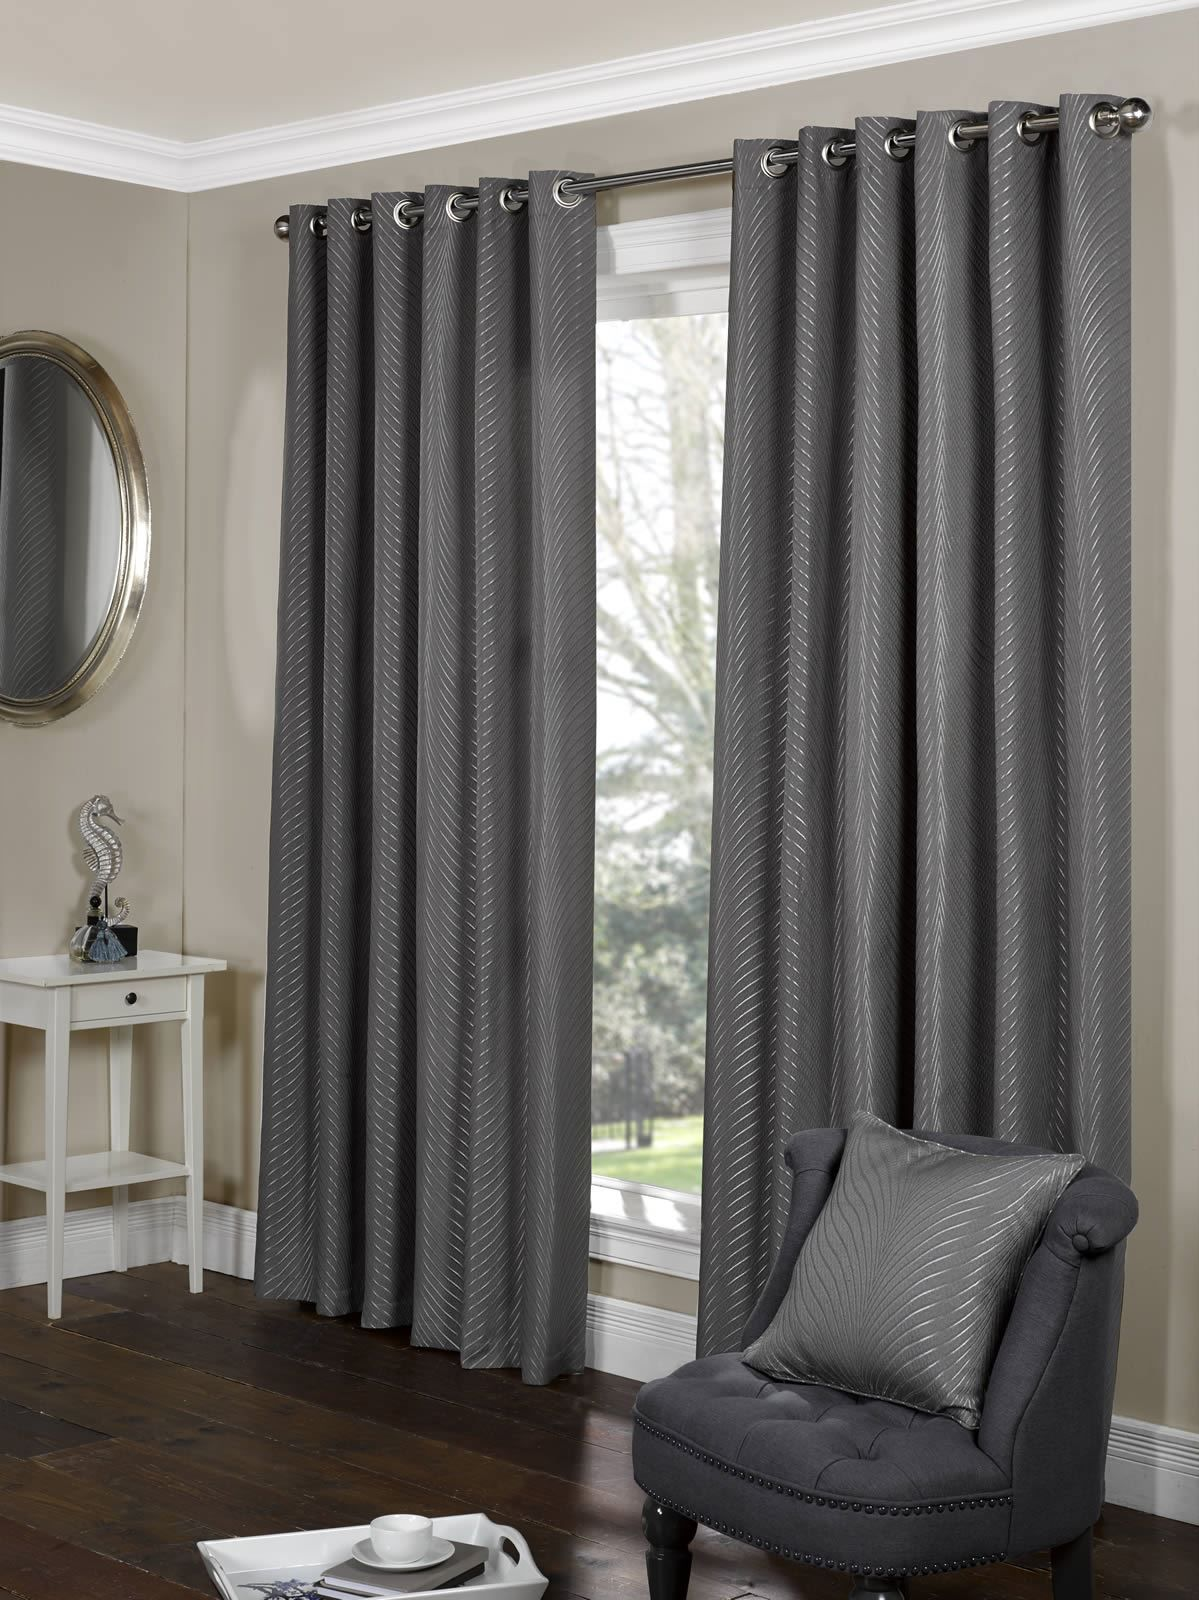 Image Result For Charcoal Curtains For Living Room Ready Made Eyelet Curtains Curtains Uk Curtains